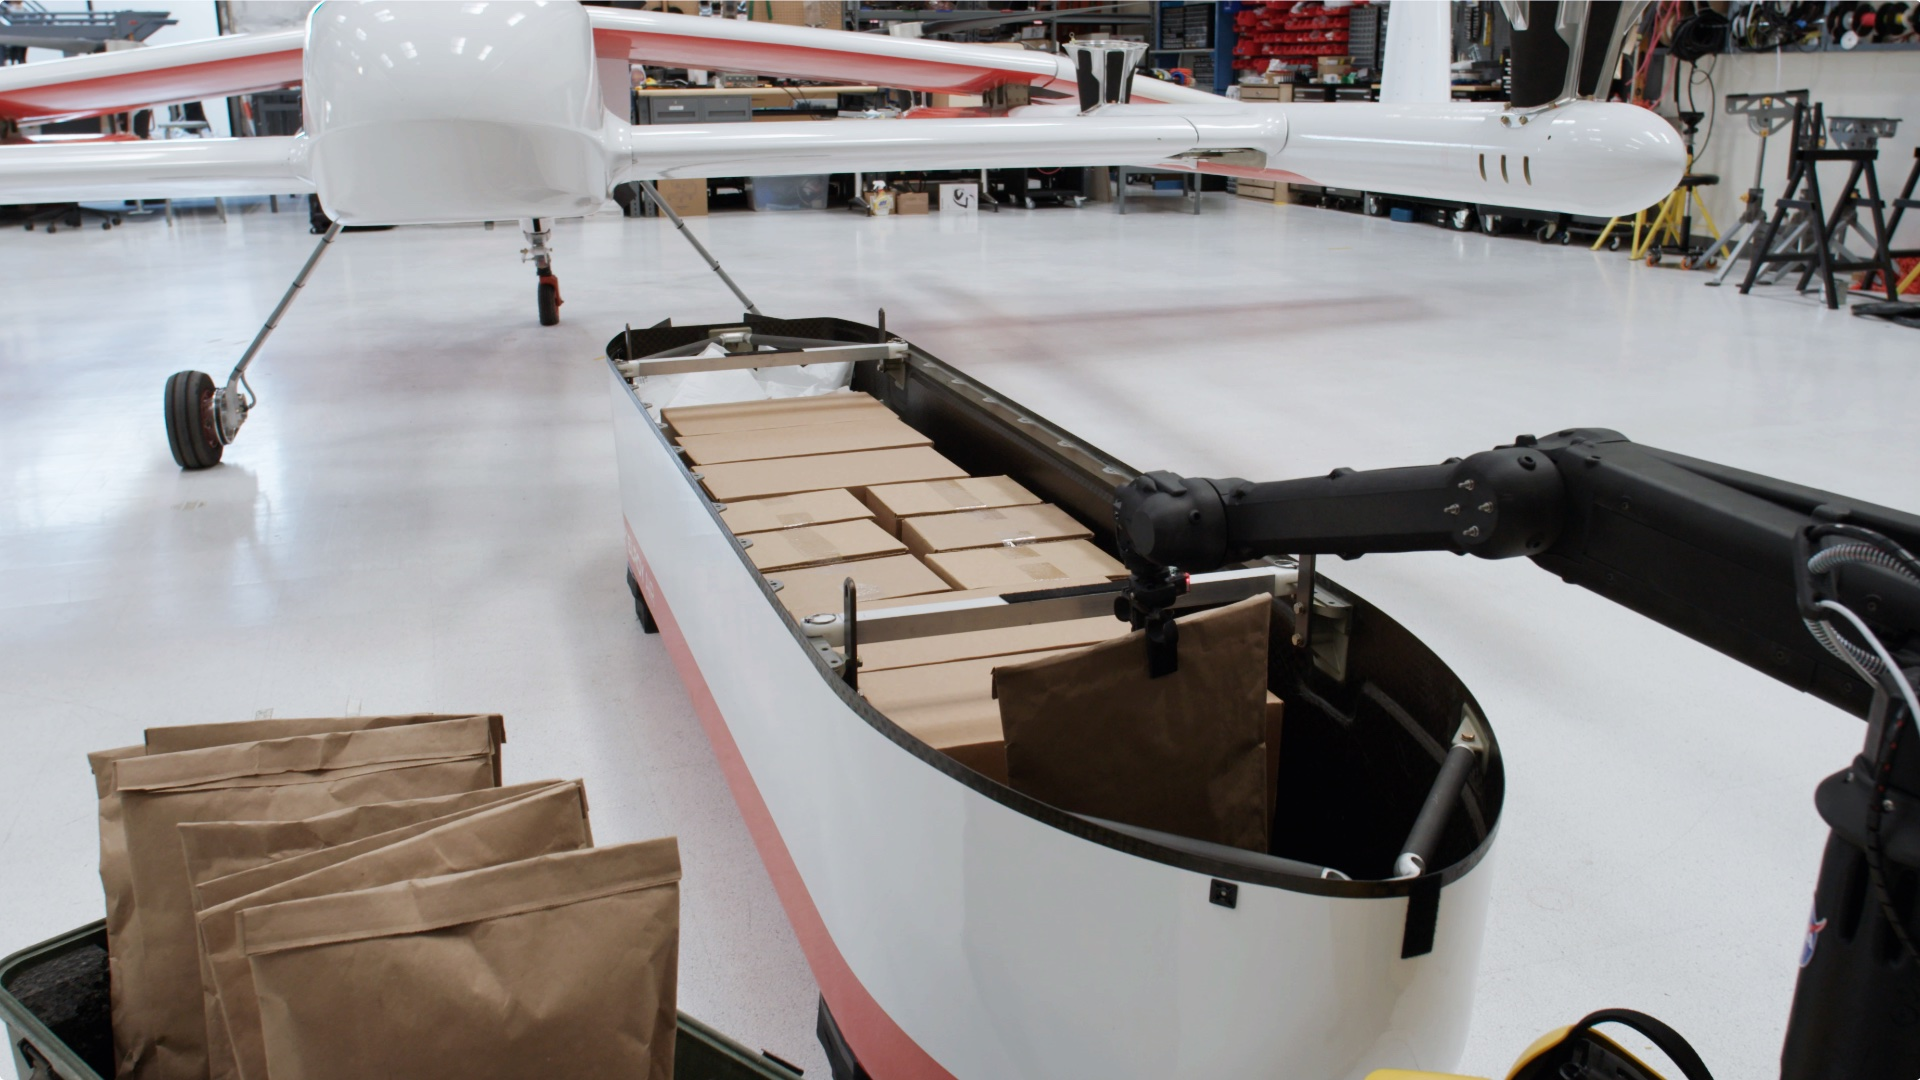 Picture of the Chaparral cargo pod being loaded by autonomous robots pre-flight.